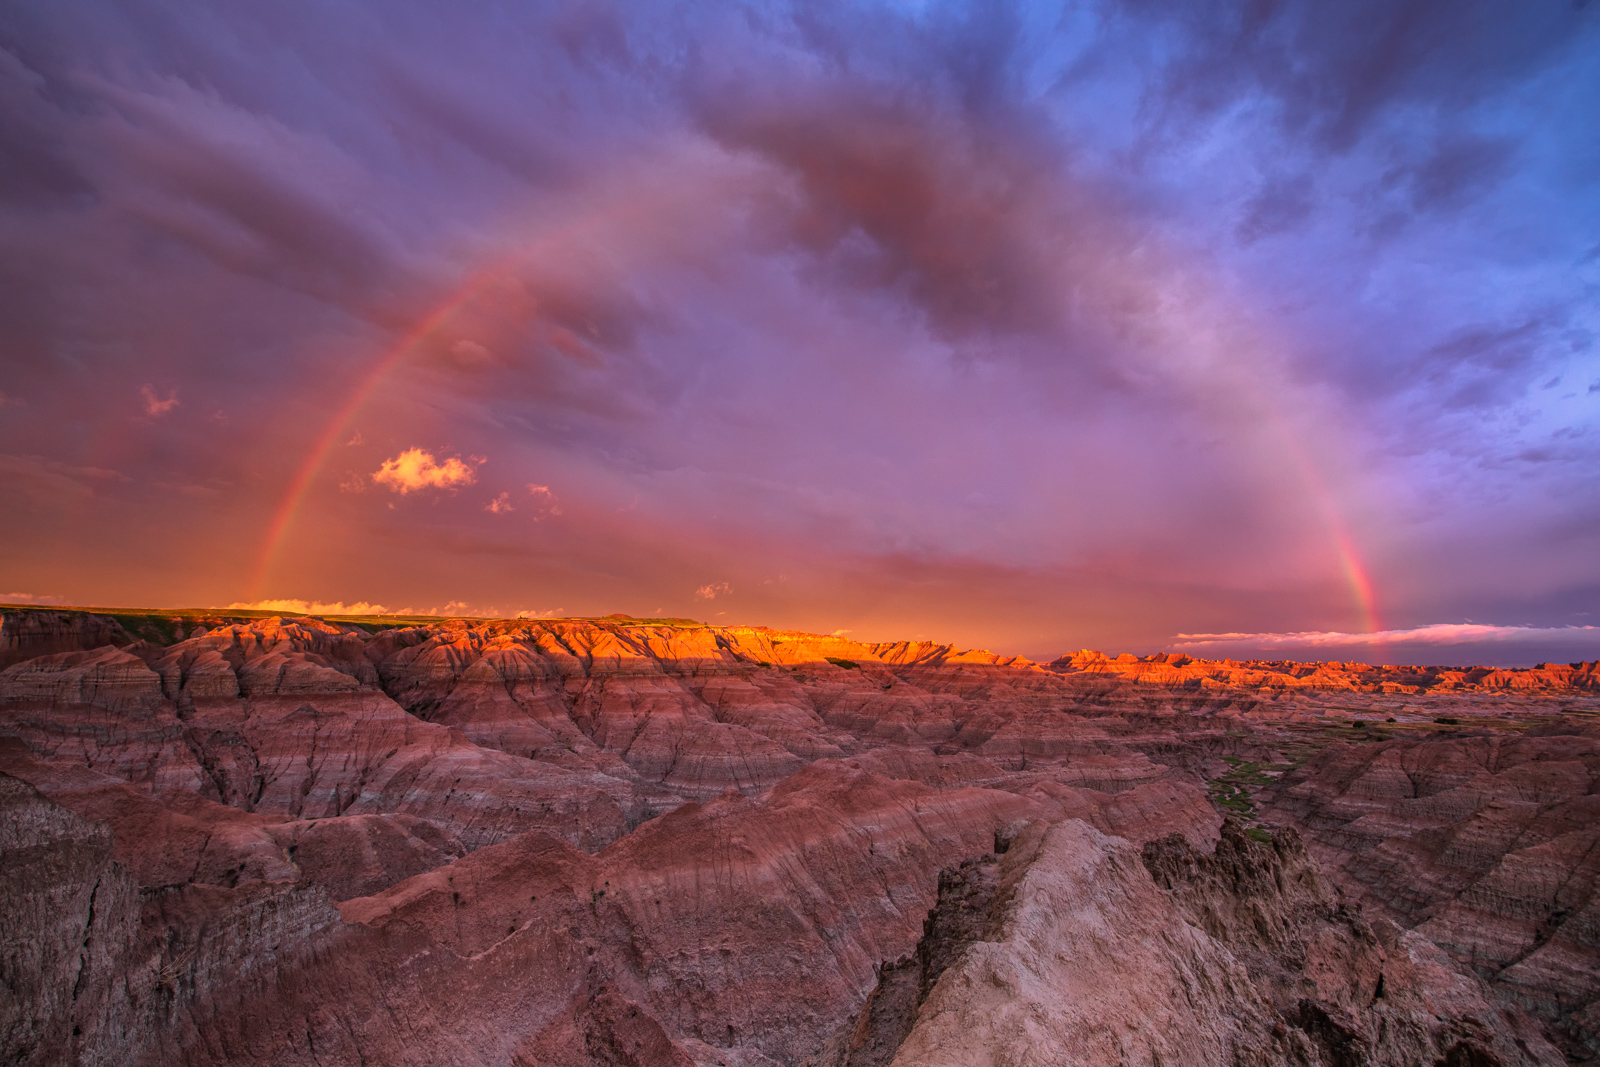 A full rainbow arcing over the badlands captured dusing a violent summer thunderstorm on the prairie.